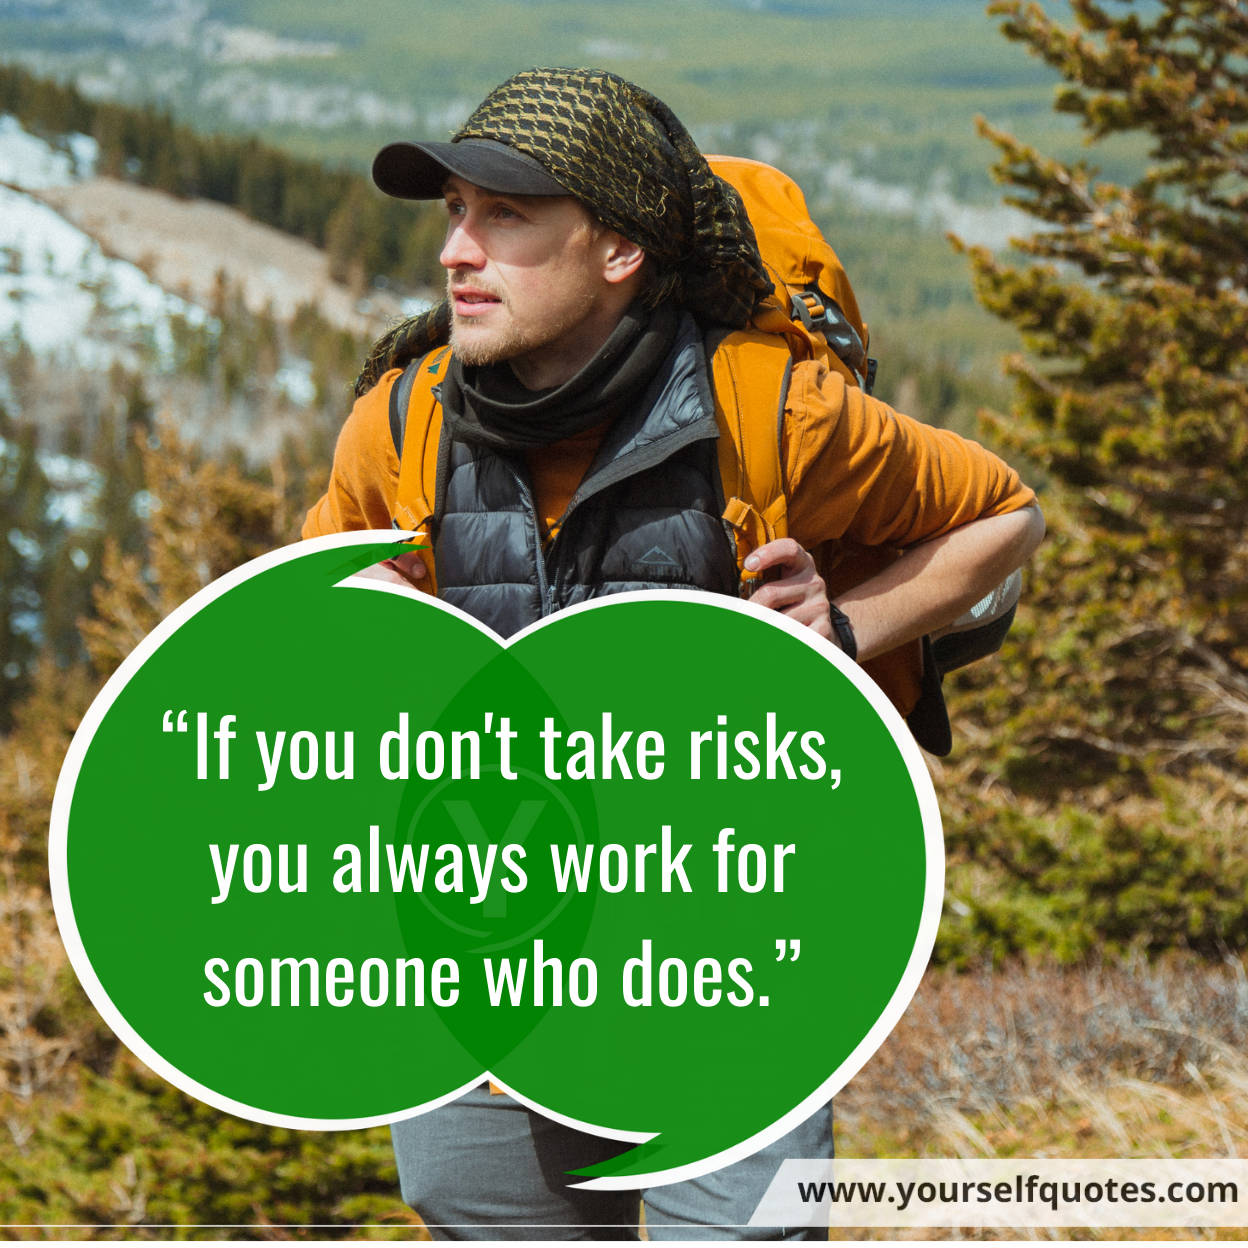 Best Quotes On Risks